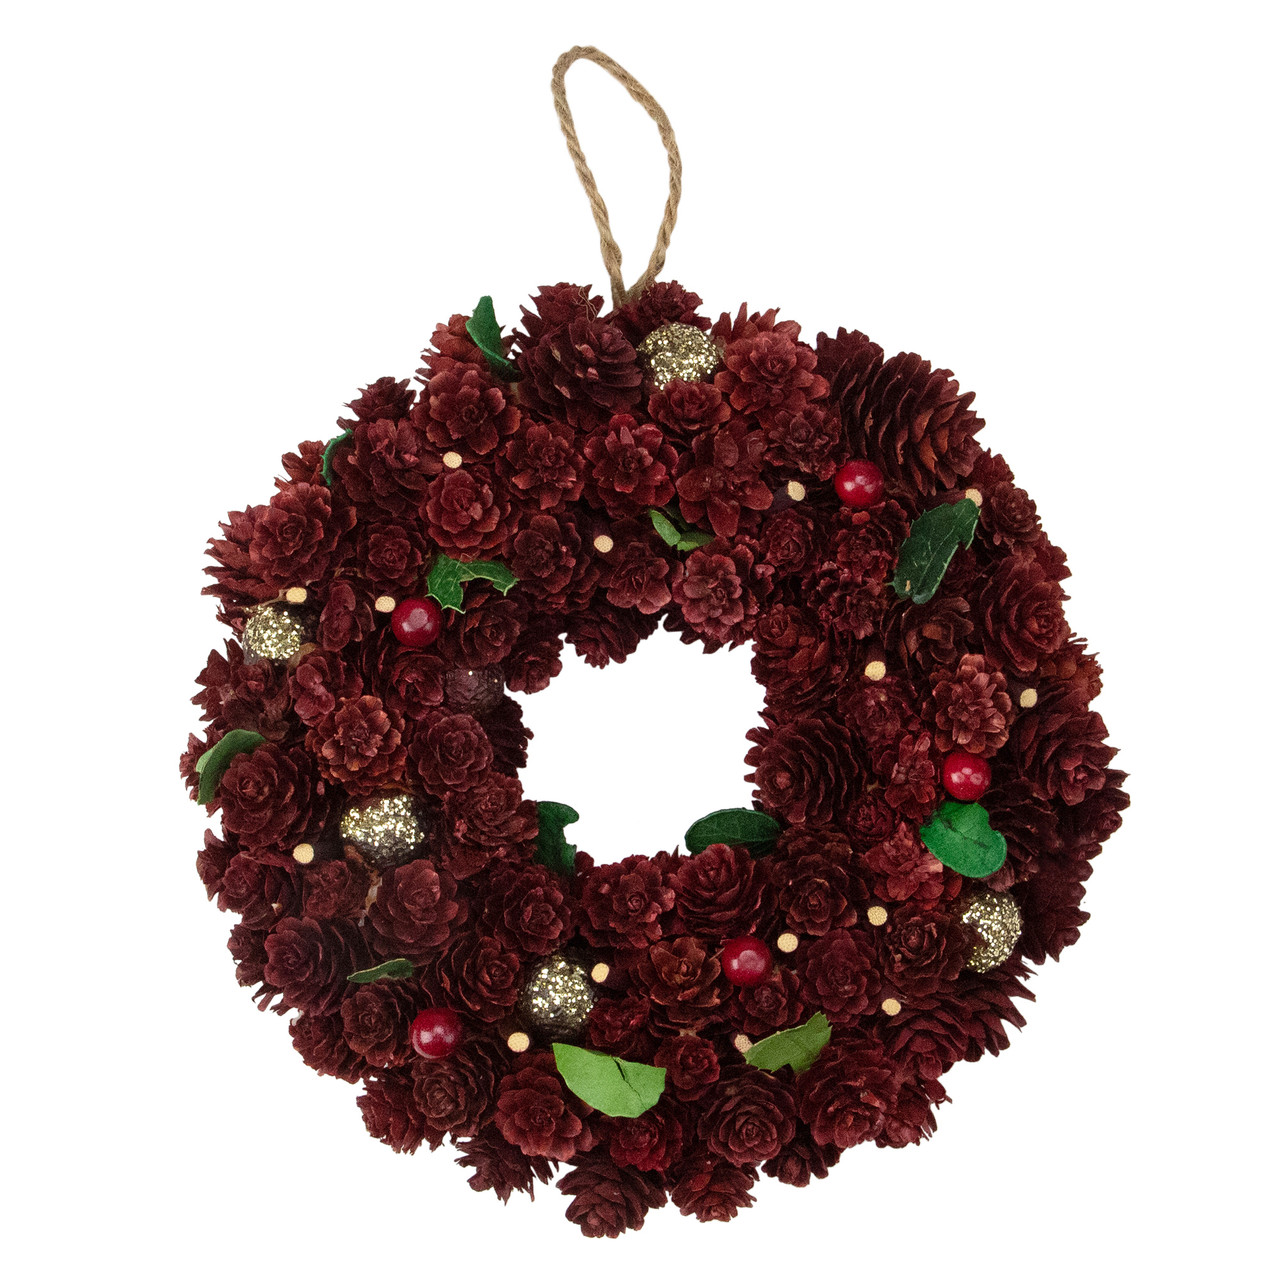 95 wine burgundy and gold glitter pine cone artificial christmas wreath unlit 31742386